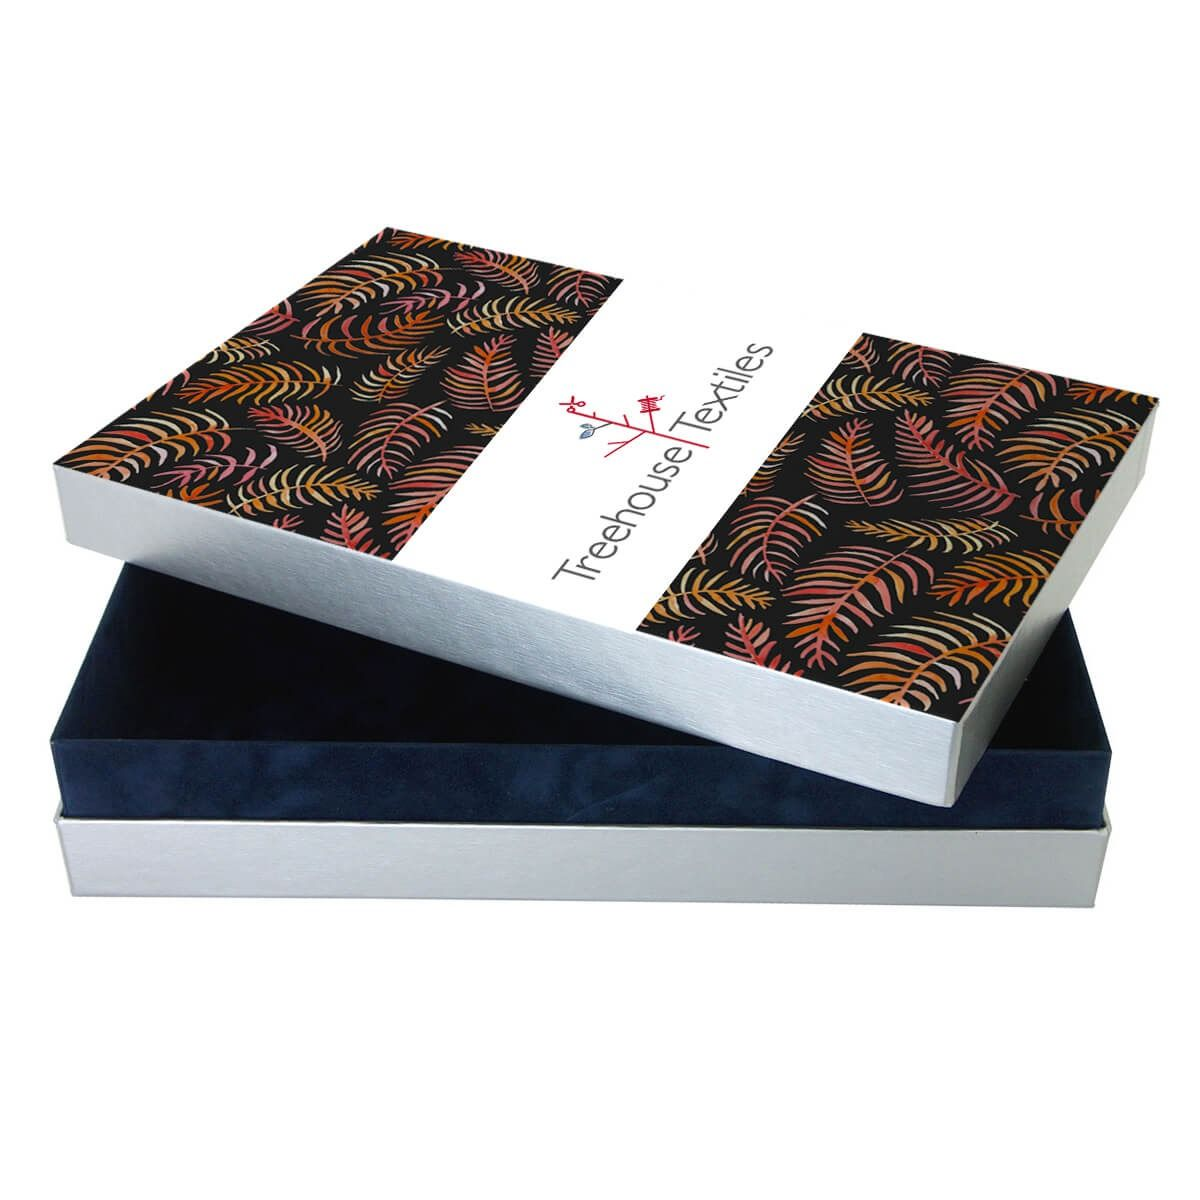 Luxury textile boxes | Luxury textiles, Custom textile, Custom boxes